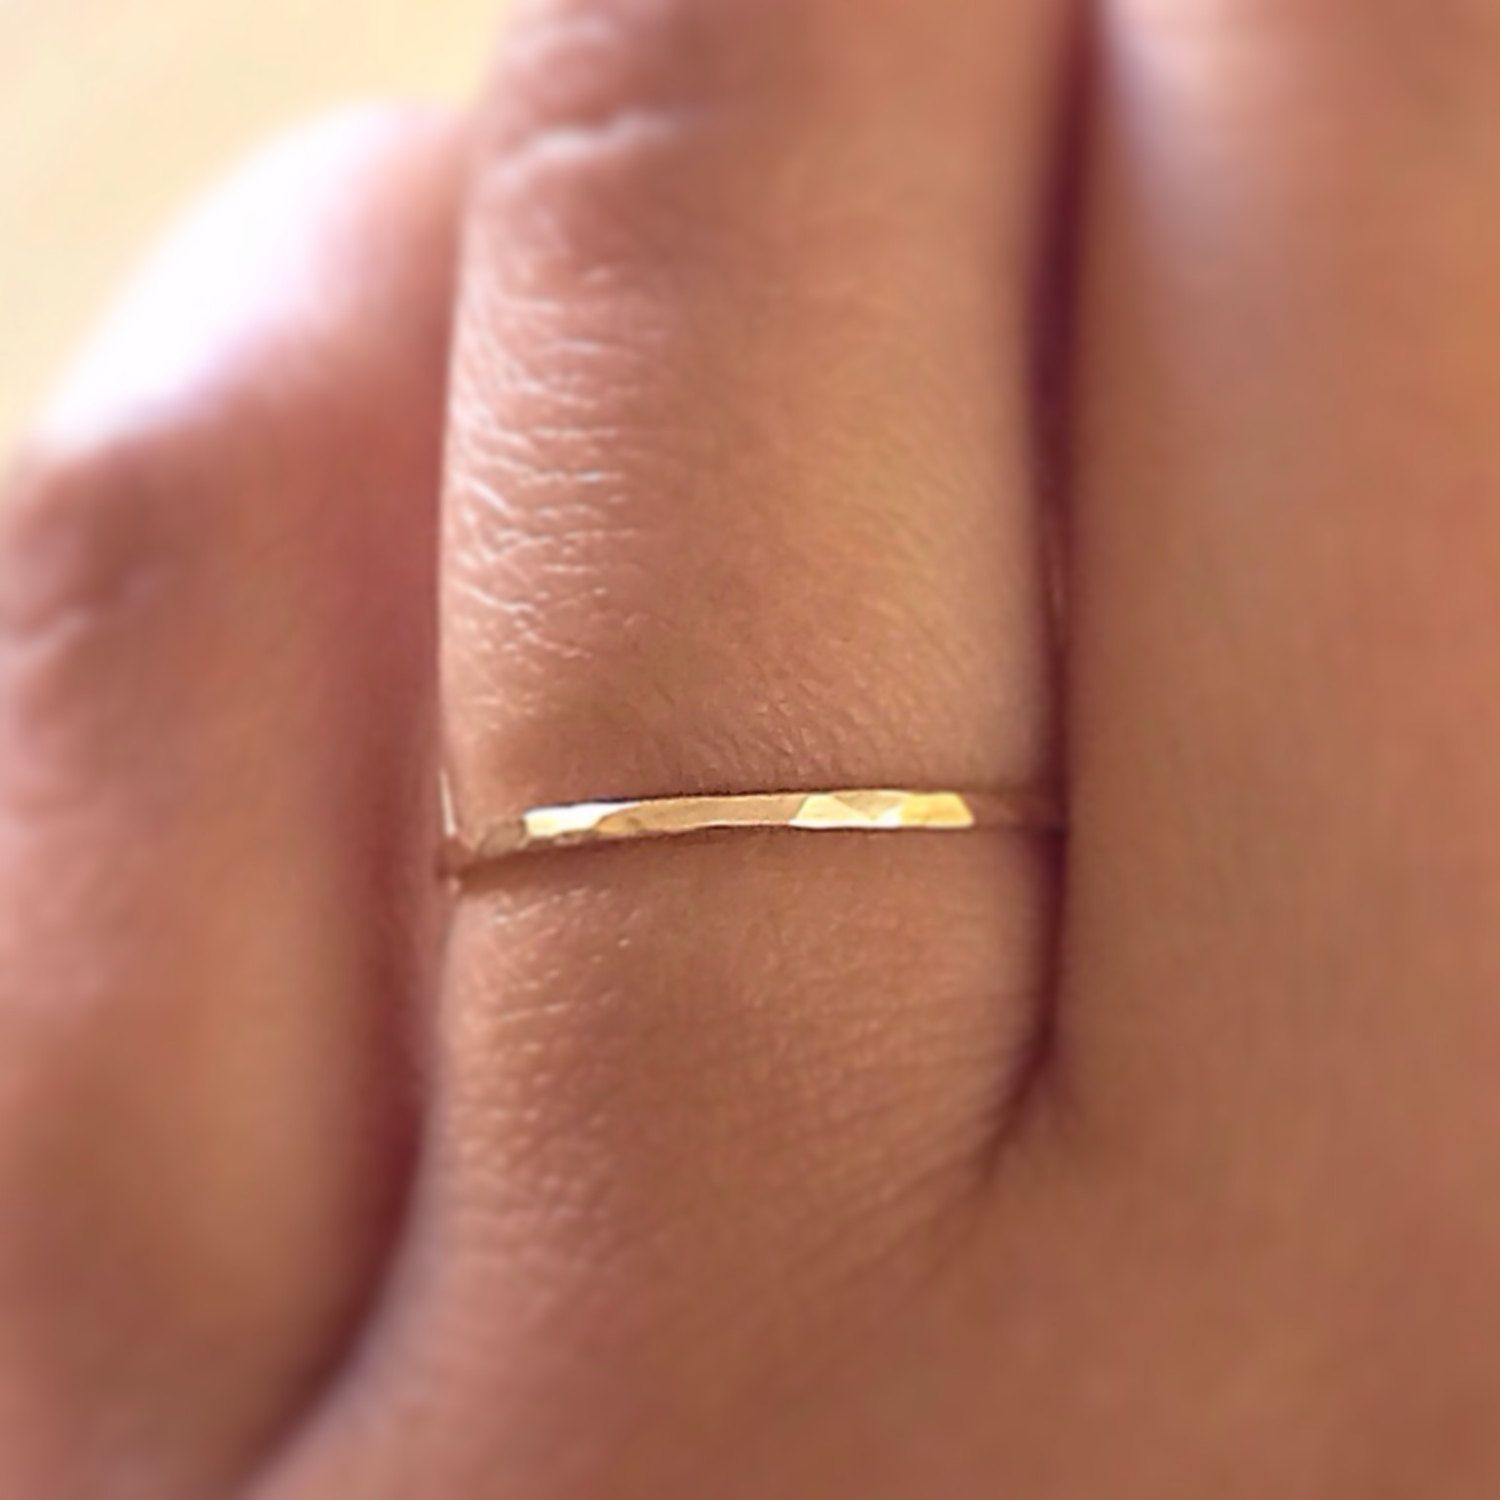 SKINNY Gold Stack RIng,14k Gold Filled Stacking Ring, Gold Band Ring, Hammered Gold Ring, Minimalist Jewelry by ArkensJewelryBox on Etsy